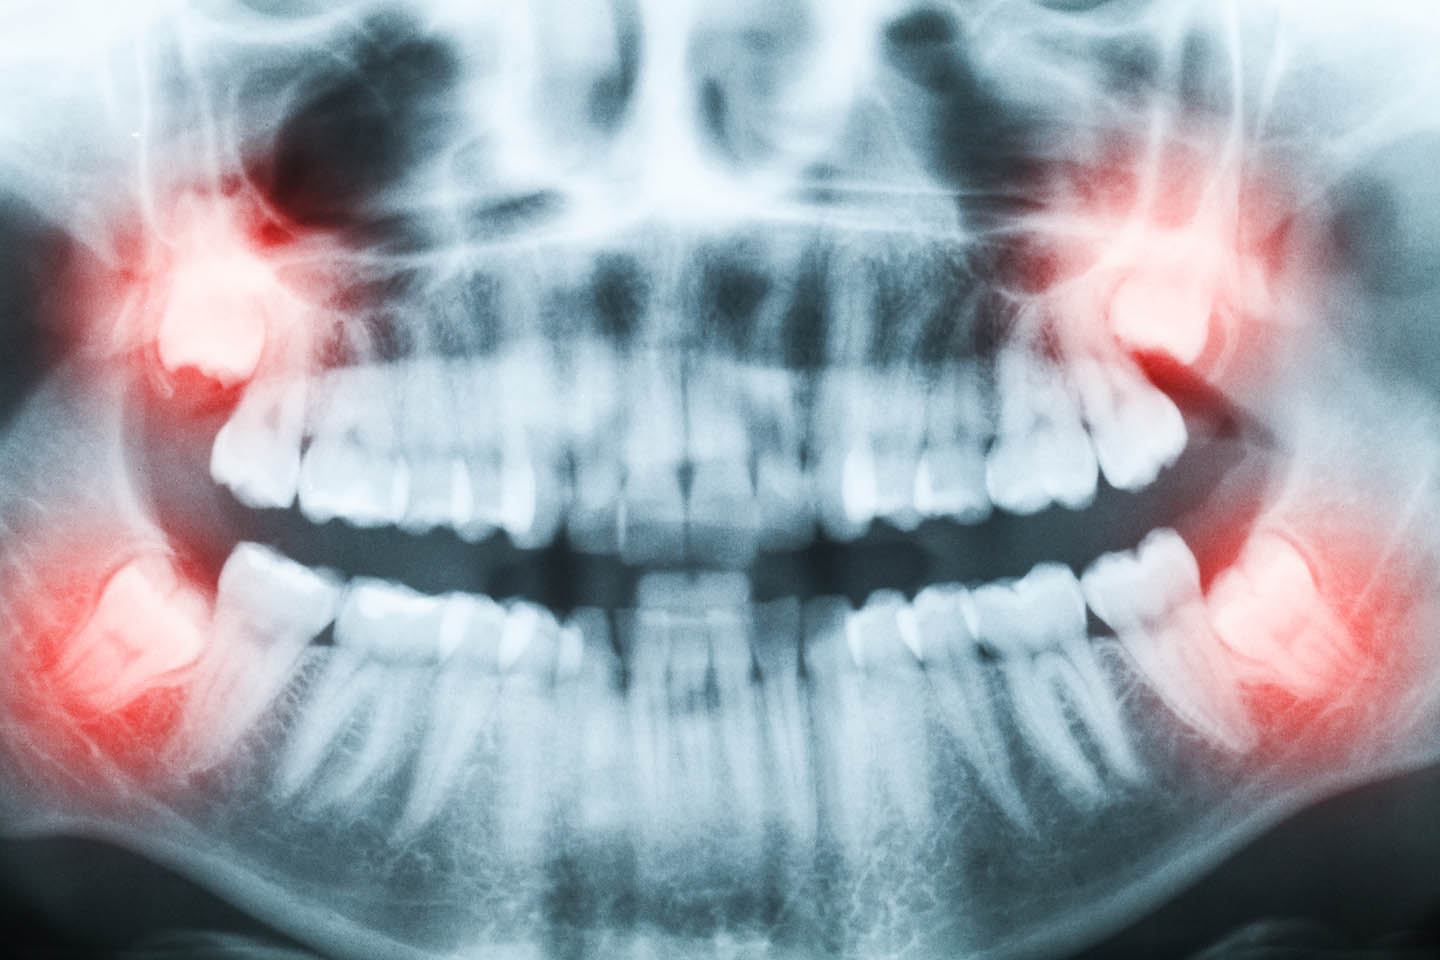 xray of mouth with teeth pain